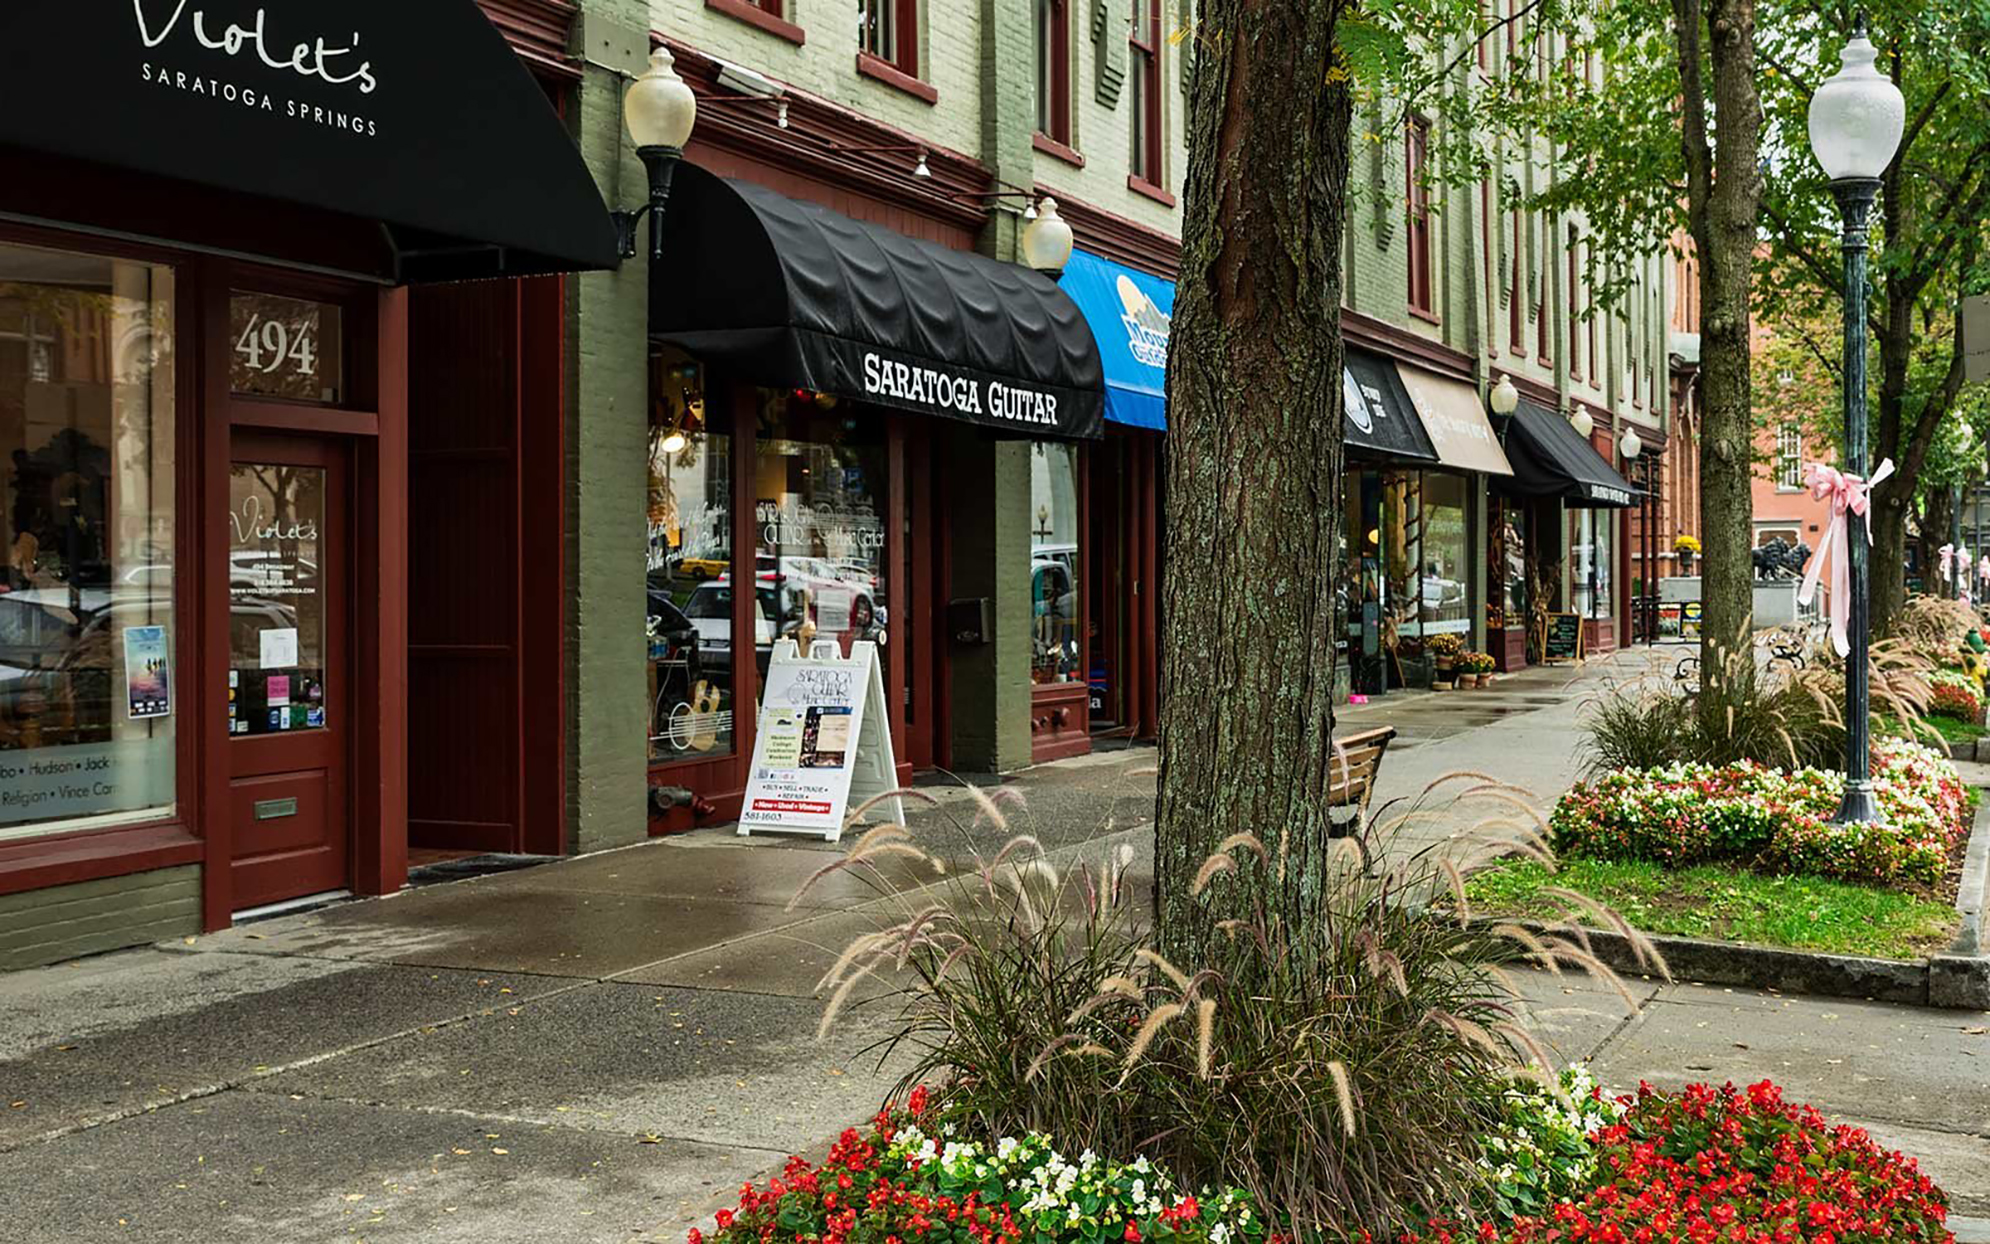 Downtown shops in Saratoga Springs, New York